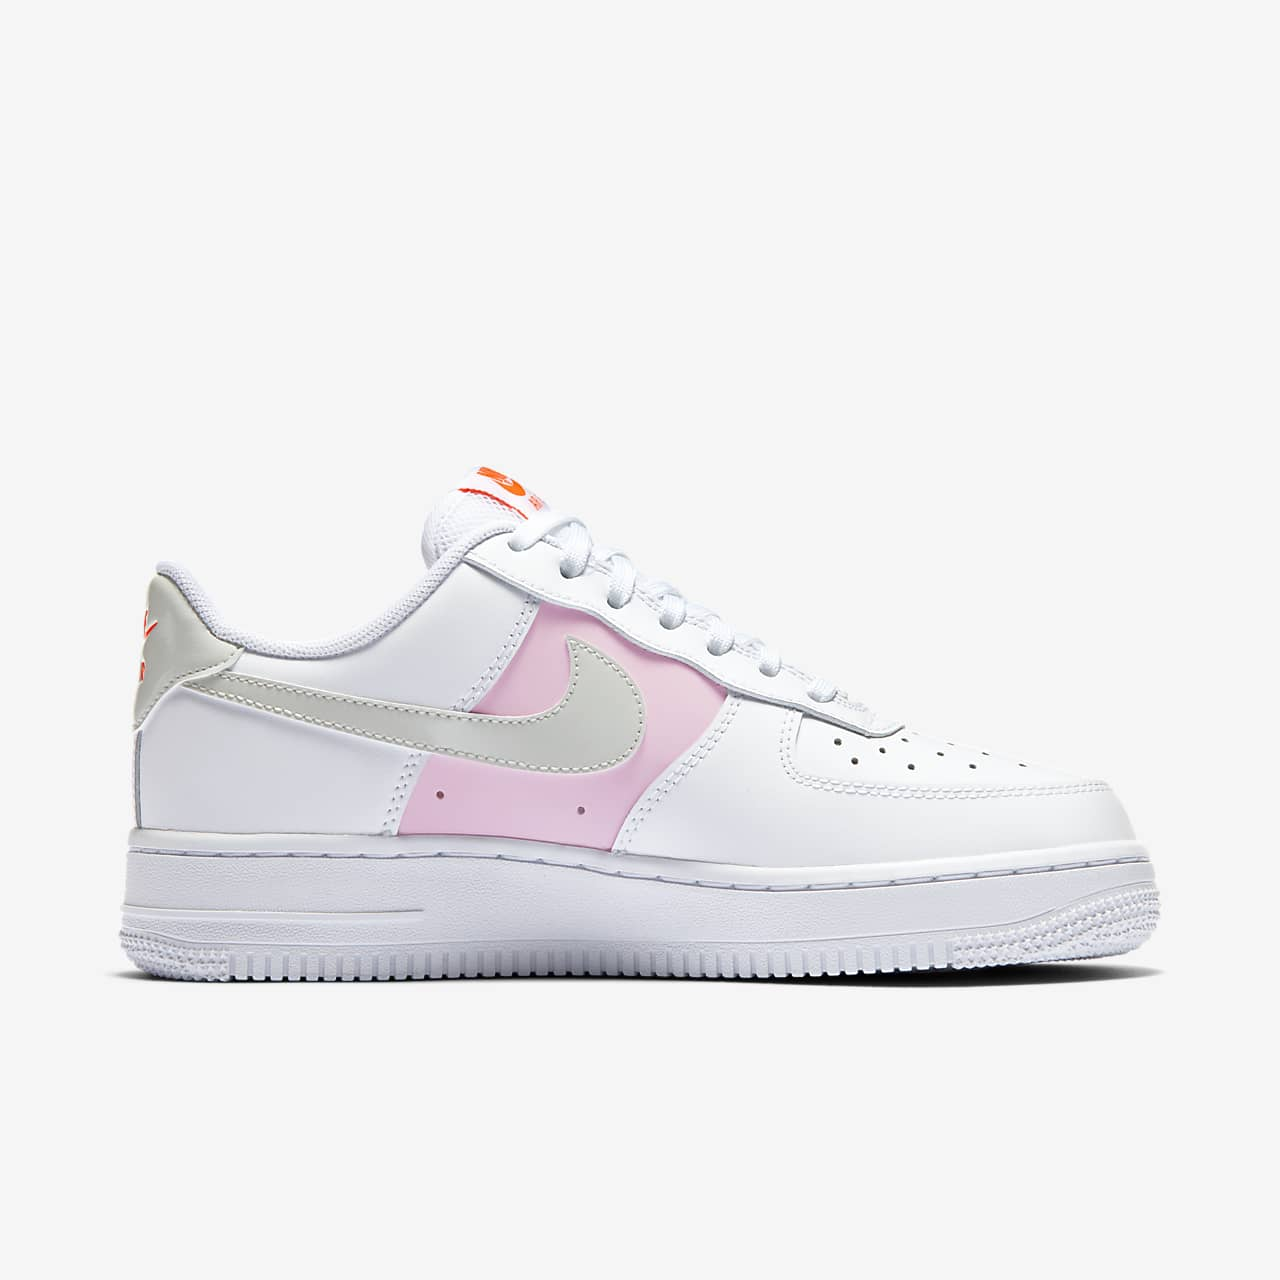 Nike Air Force 1 wmns white pink foam CZ0369 100 Color White